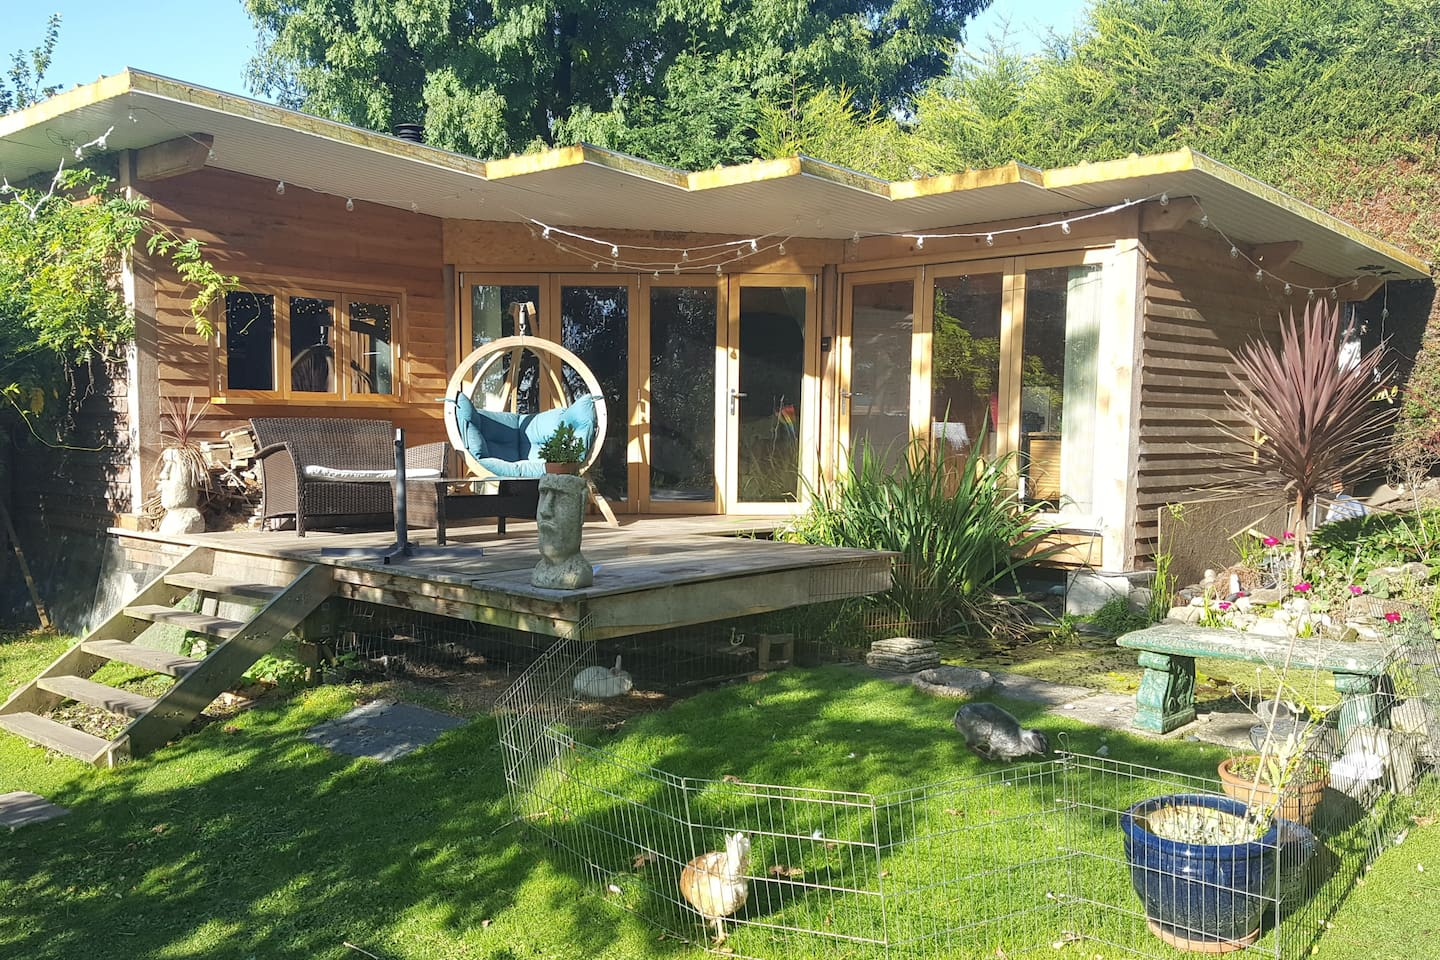 Completely self contained studio chalet at the top of our garden.  Fully insulated with underfloor heating, kitchen, wood burner,  fire basket and a view!